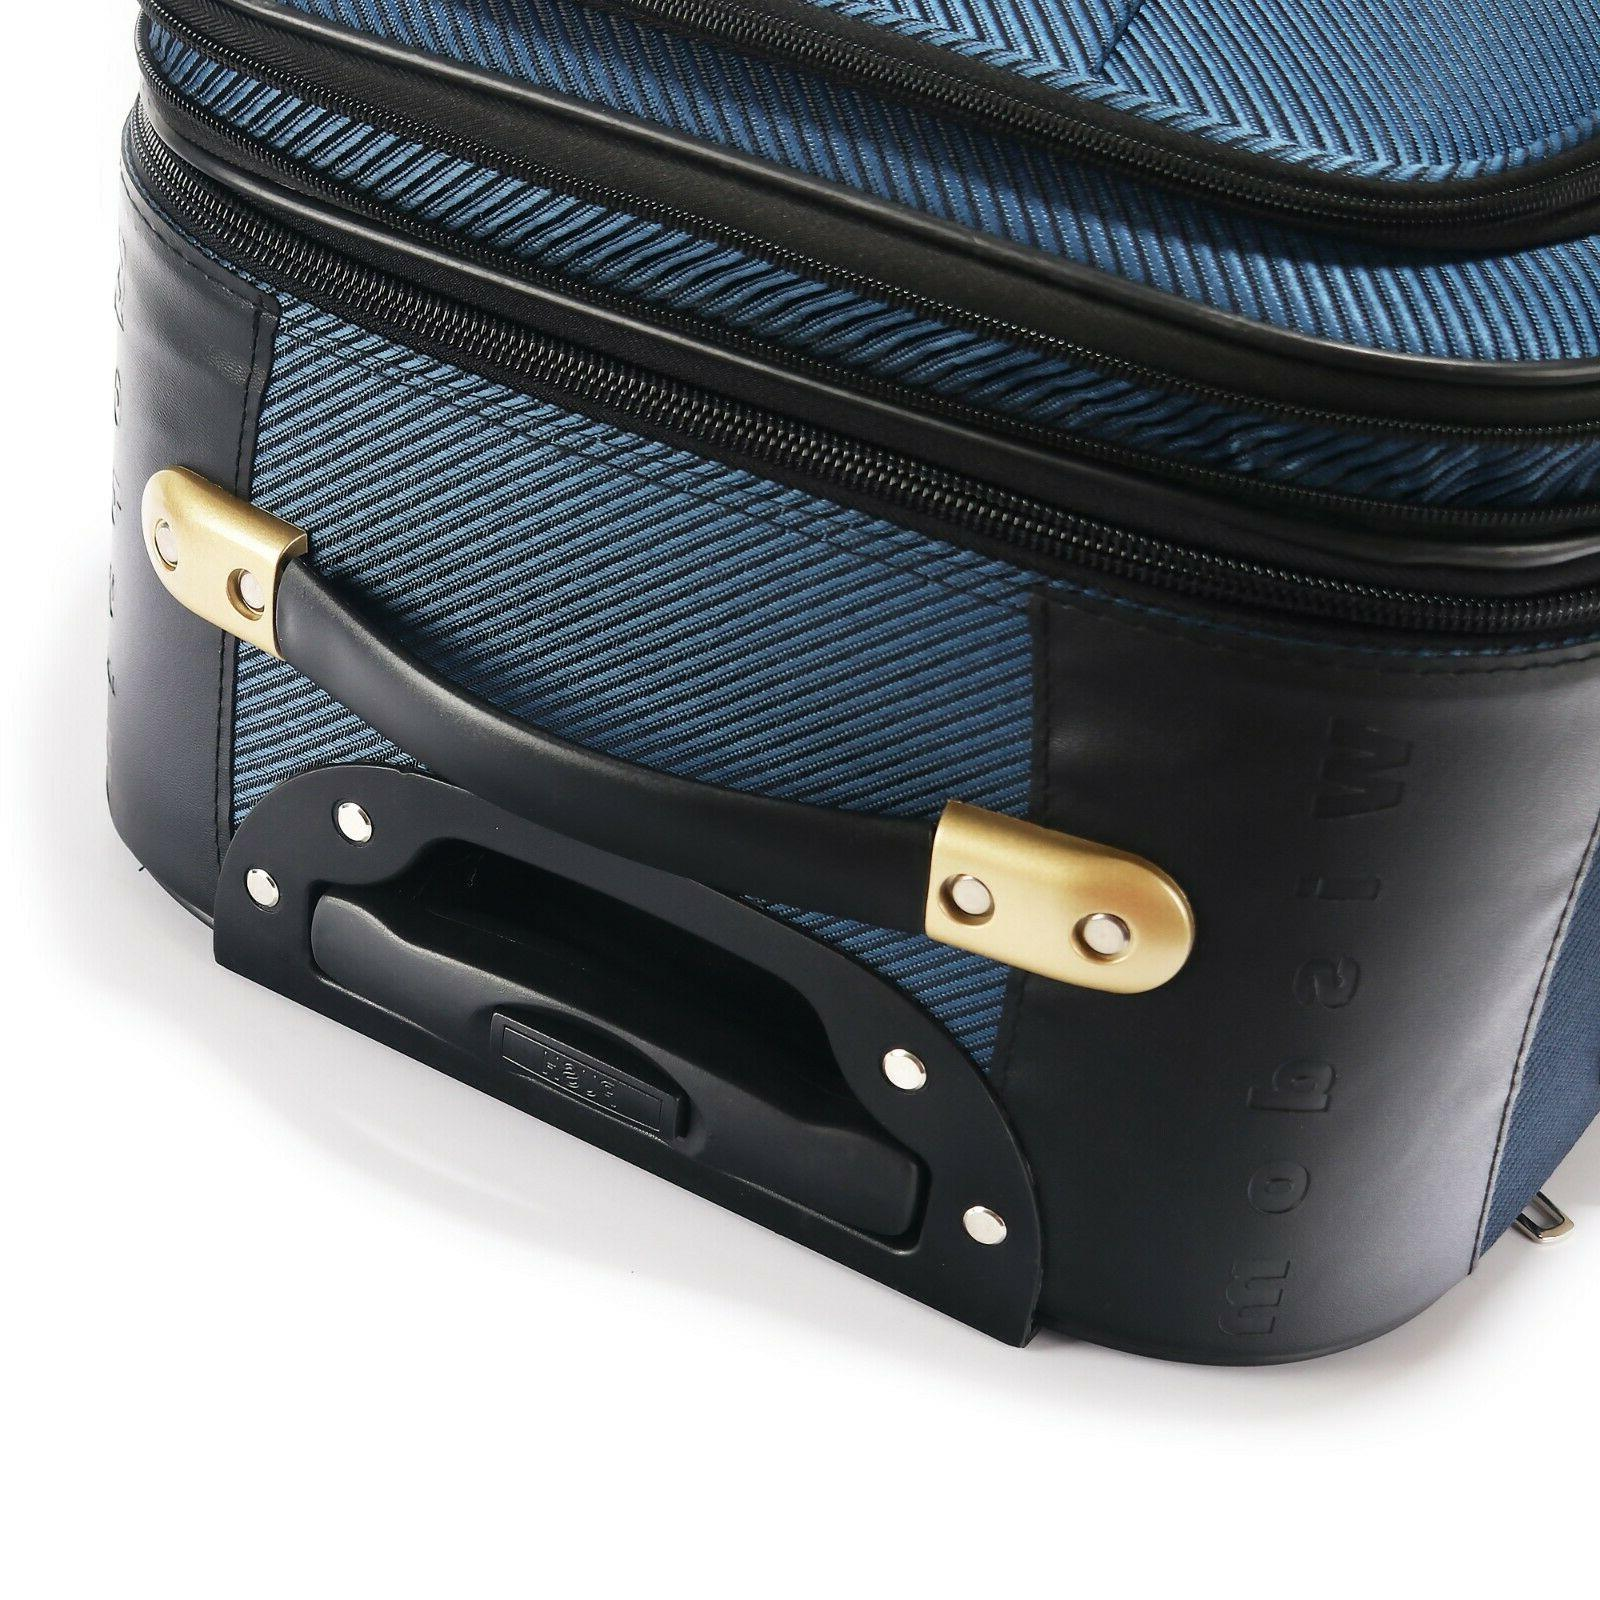 Carry Luggage 22x14x9 Travel Spinner